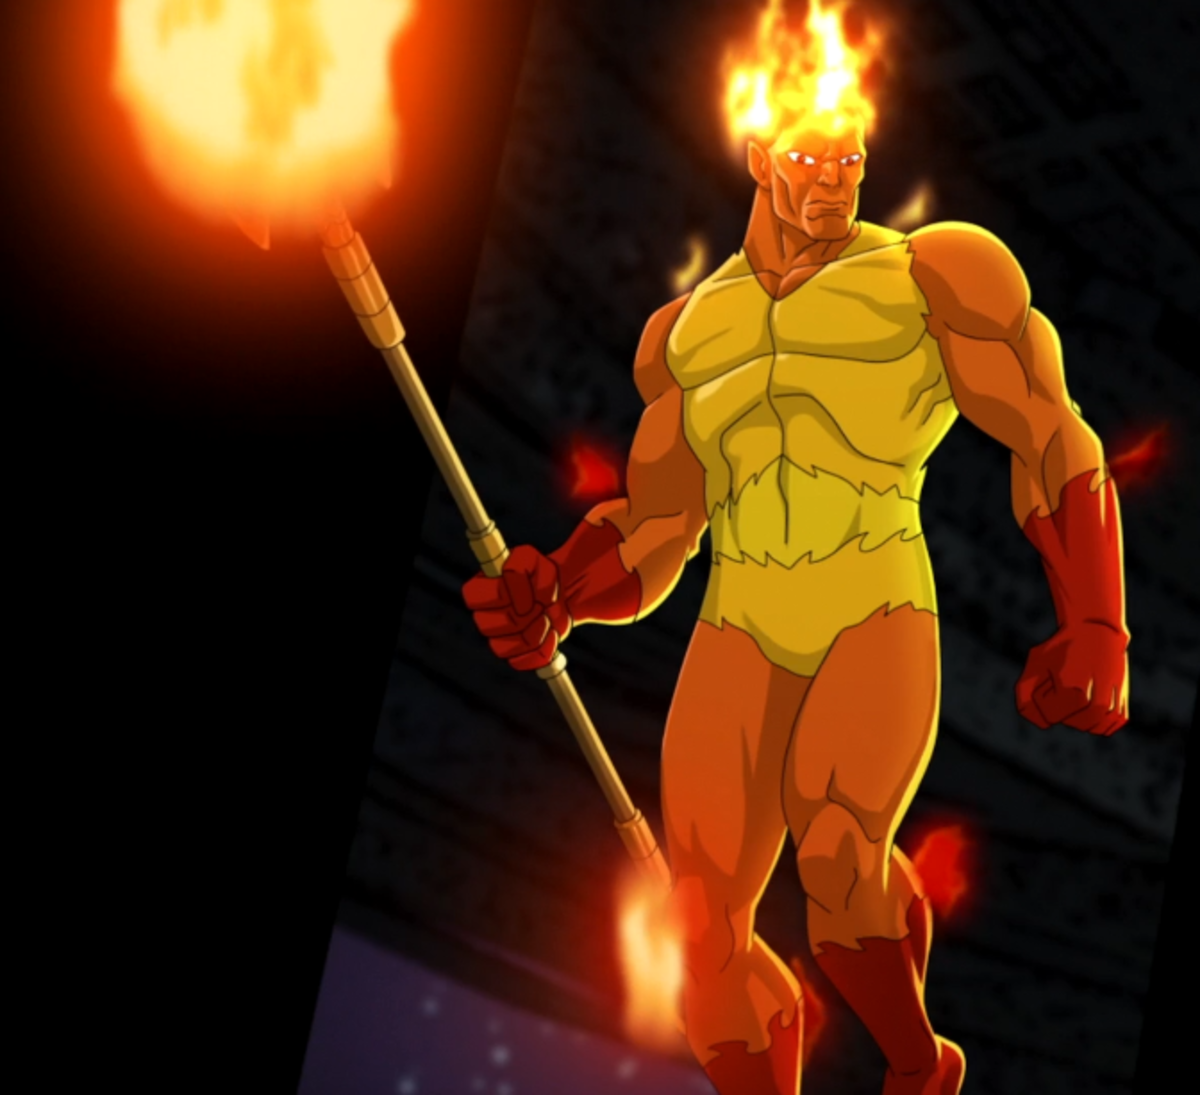 Firelord, one of Galactus's earlier heralds